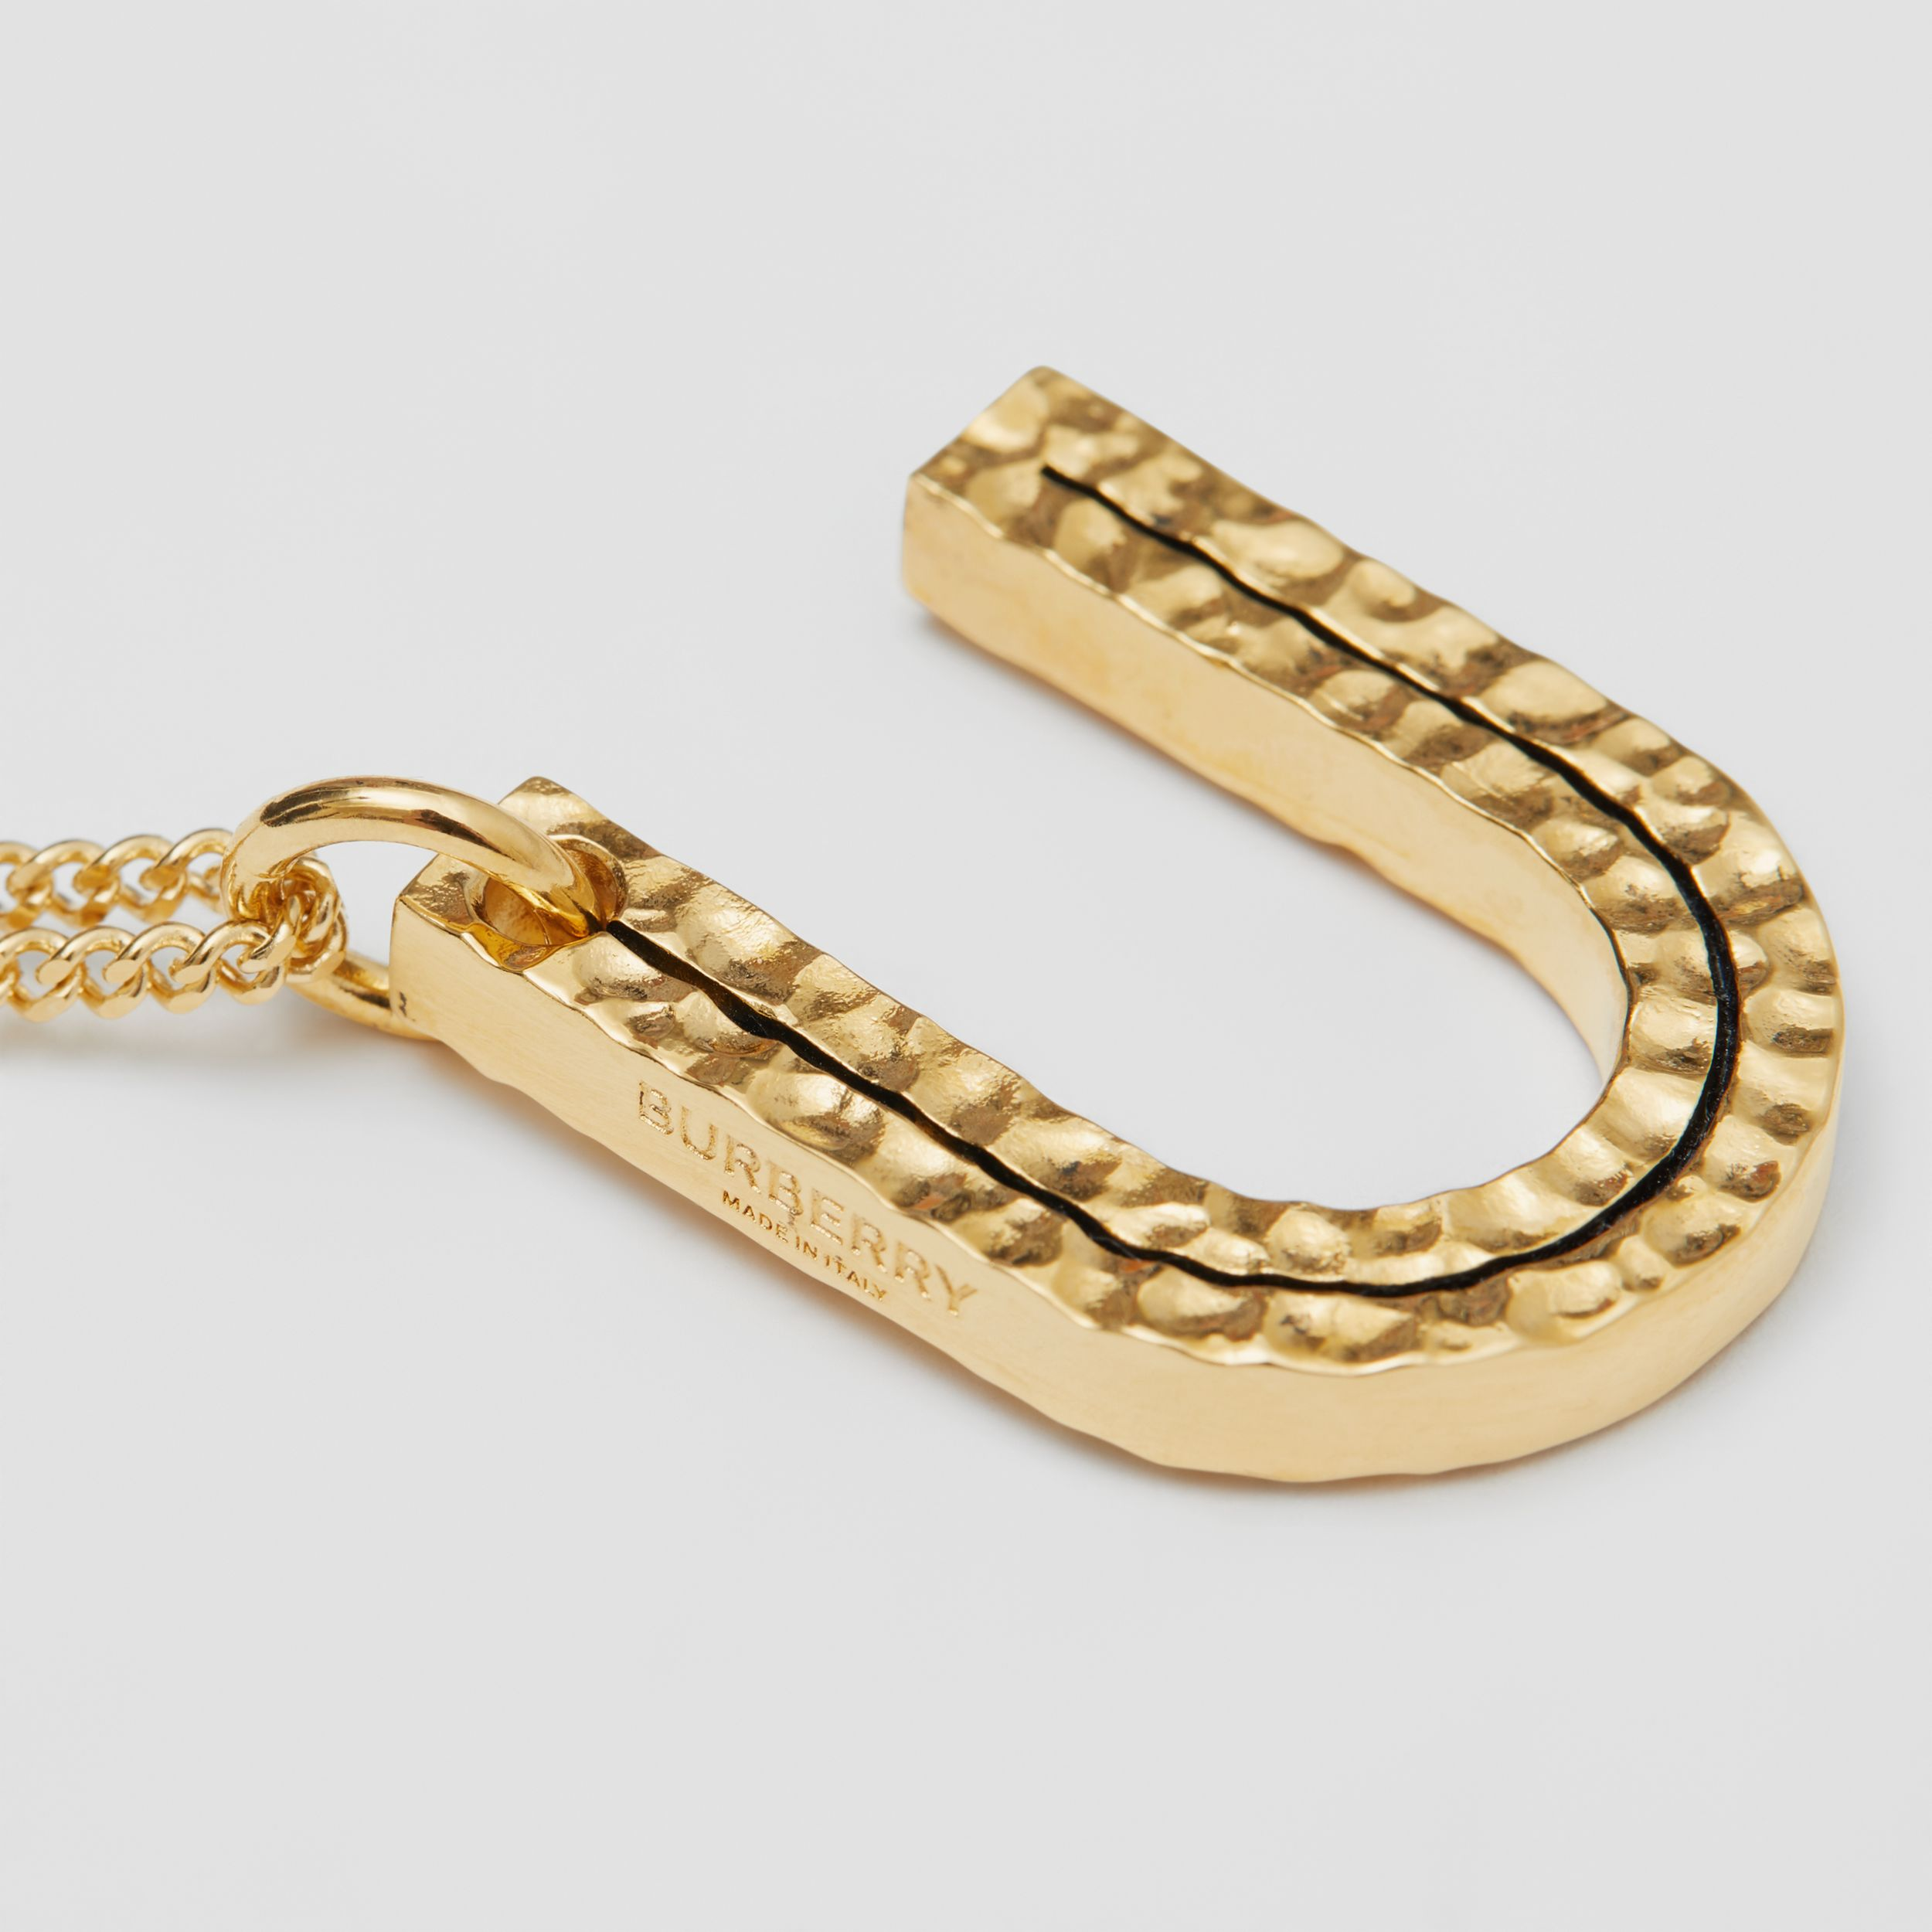 'U' Alphabet Charm Gold-plated Necklace in Light - Women | Burberry - 2